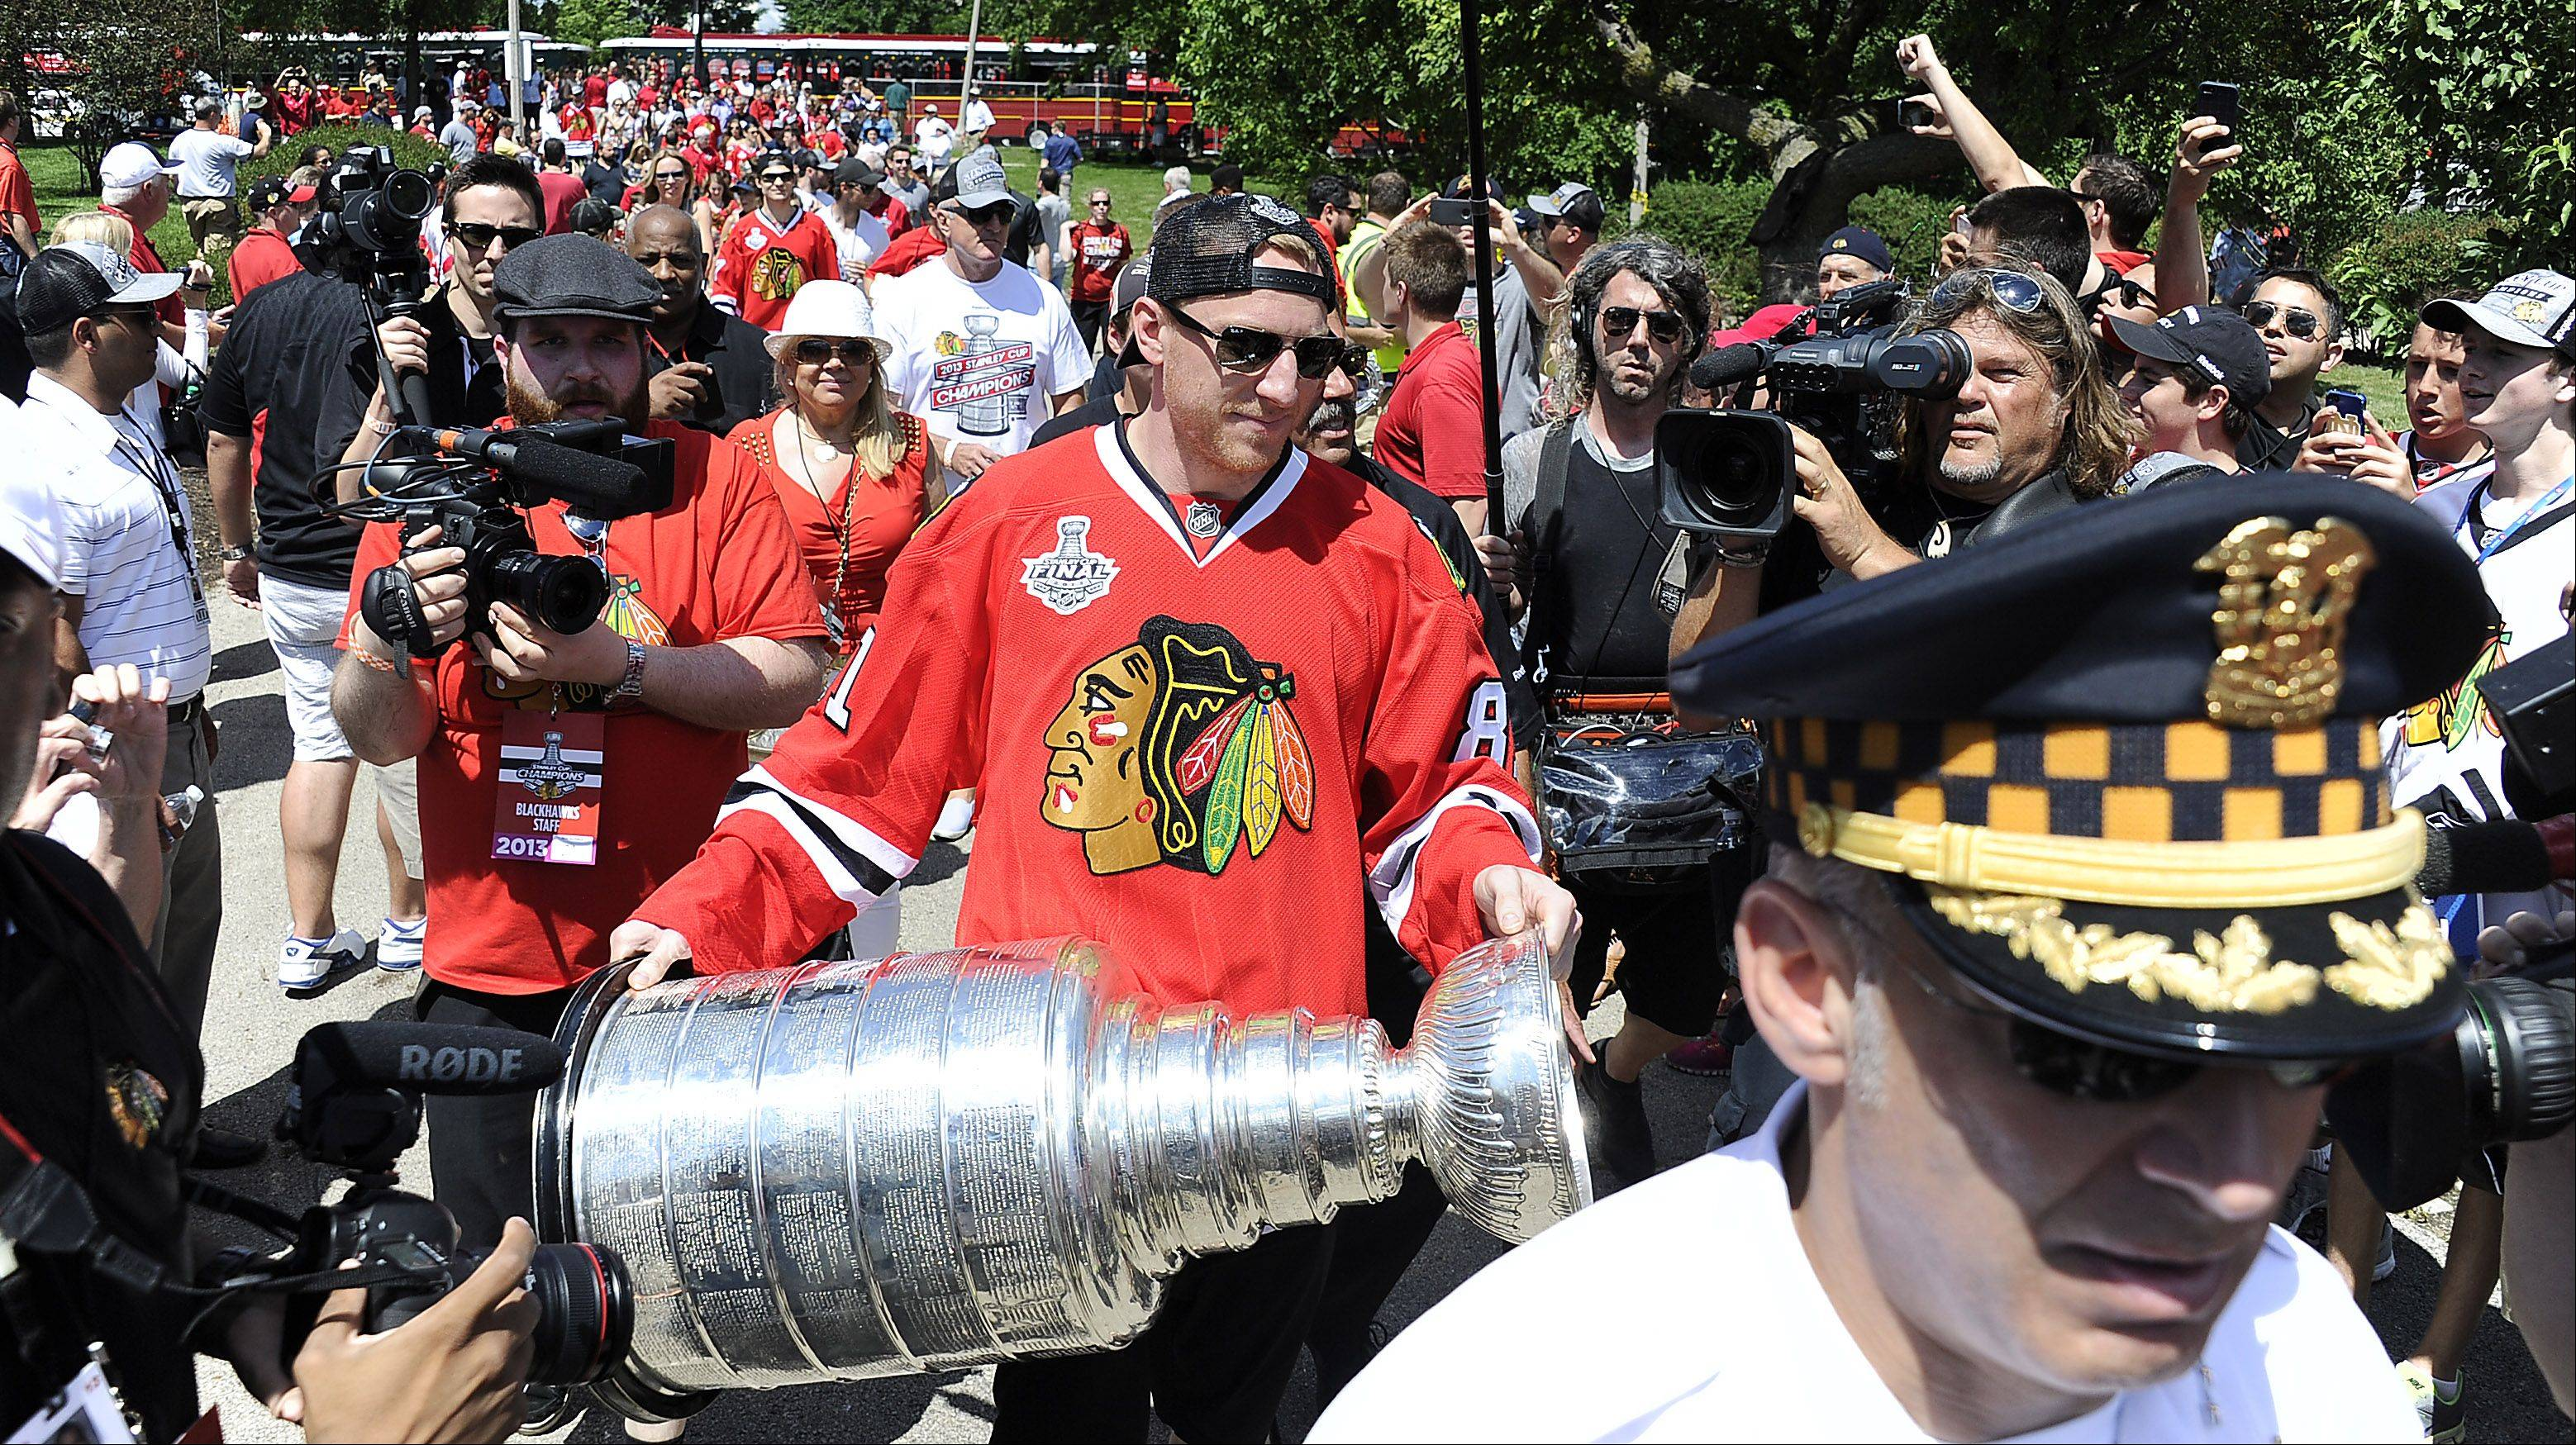 Chicago Blackhawks player Marian Hossa carries the Stanley Cup from the players bus as they prepare to show it to the Blackhawks fans at Grant Park in Chicago.